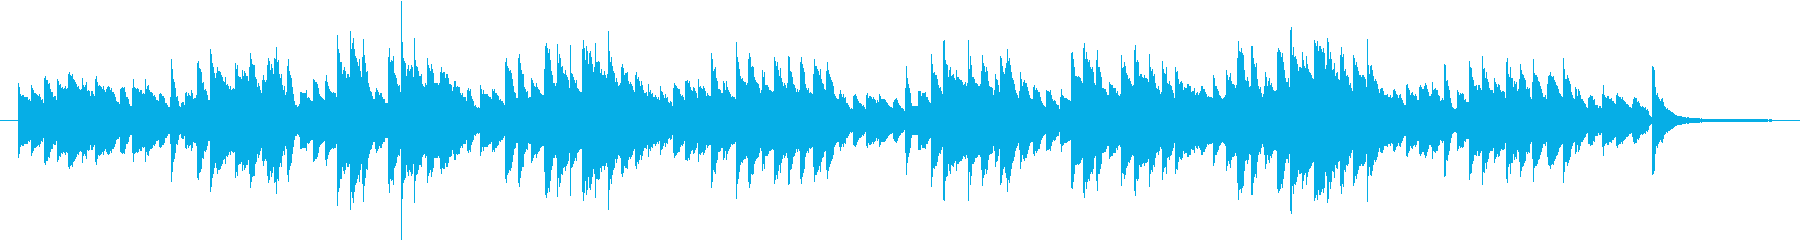 English folk song simple piano accompaniment's reproduced waveform